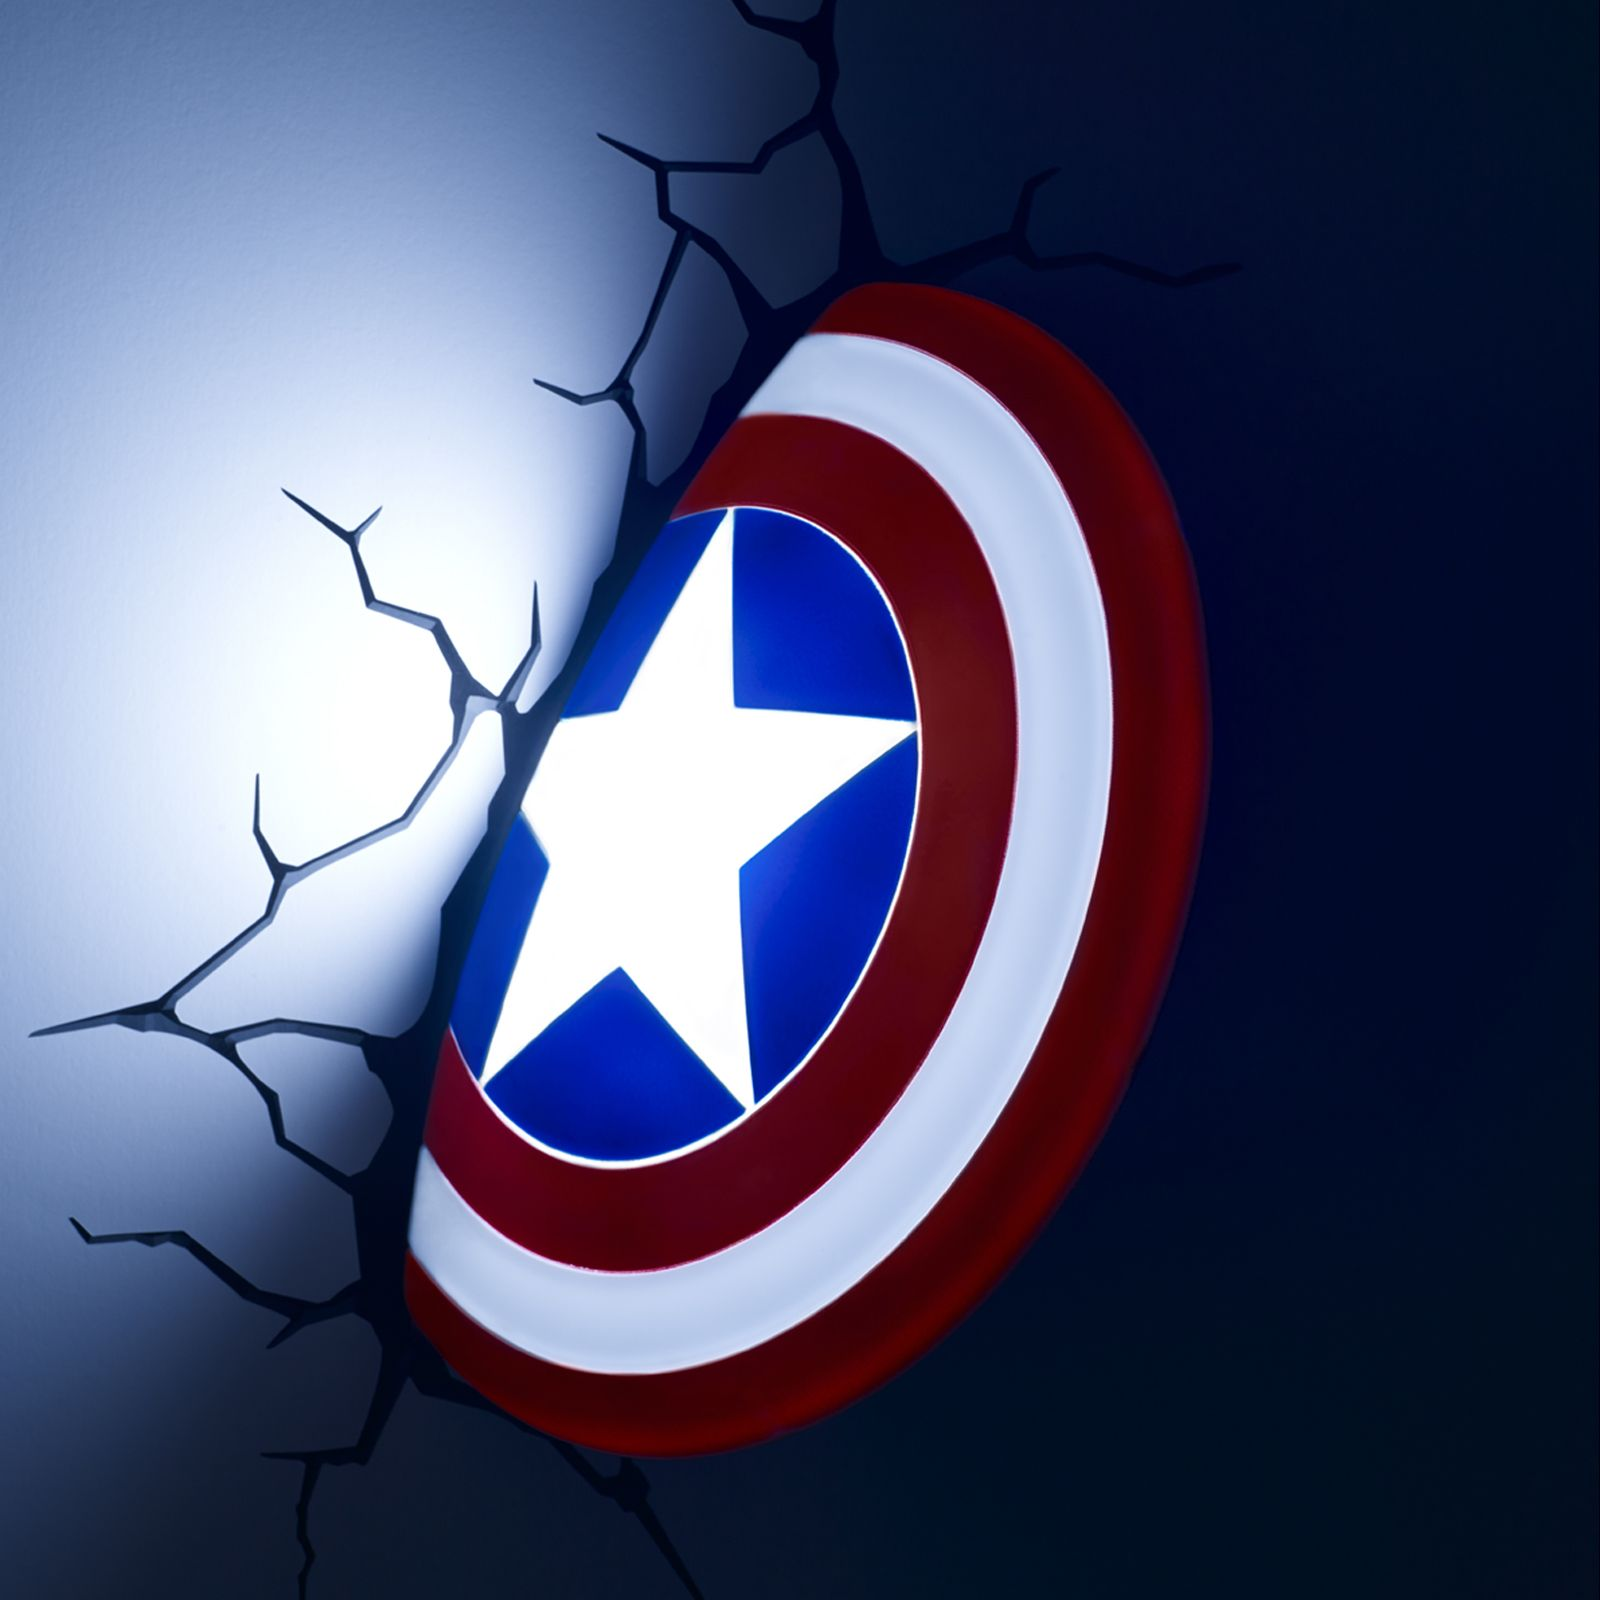 Wall Lamps Marvel : MARVEL AVENGERS 3D WALL LIGHT - HULK, IRON MAN, CAPTAIN AMERICA, THOR, SPIDERMAN eBay